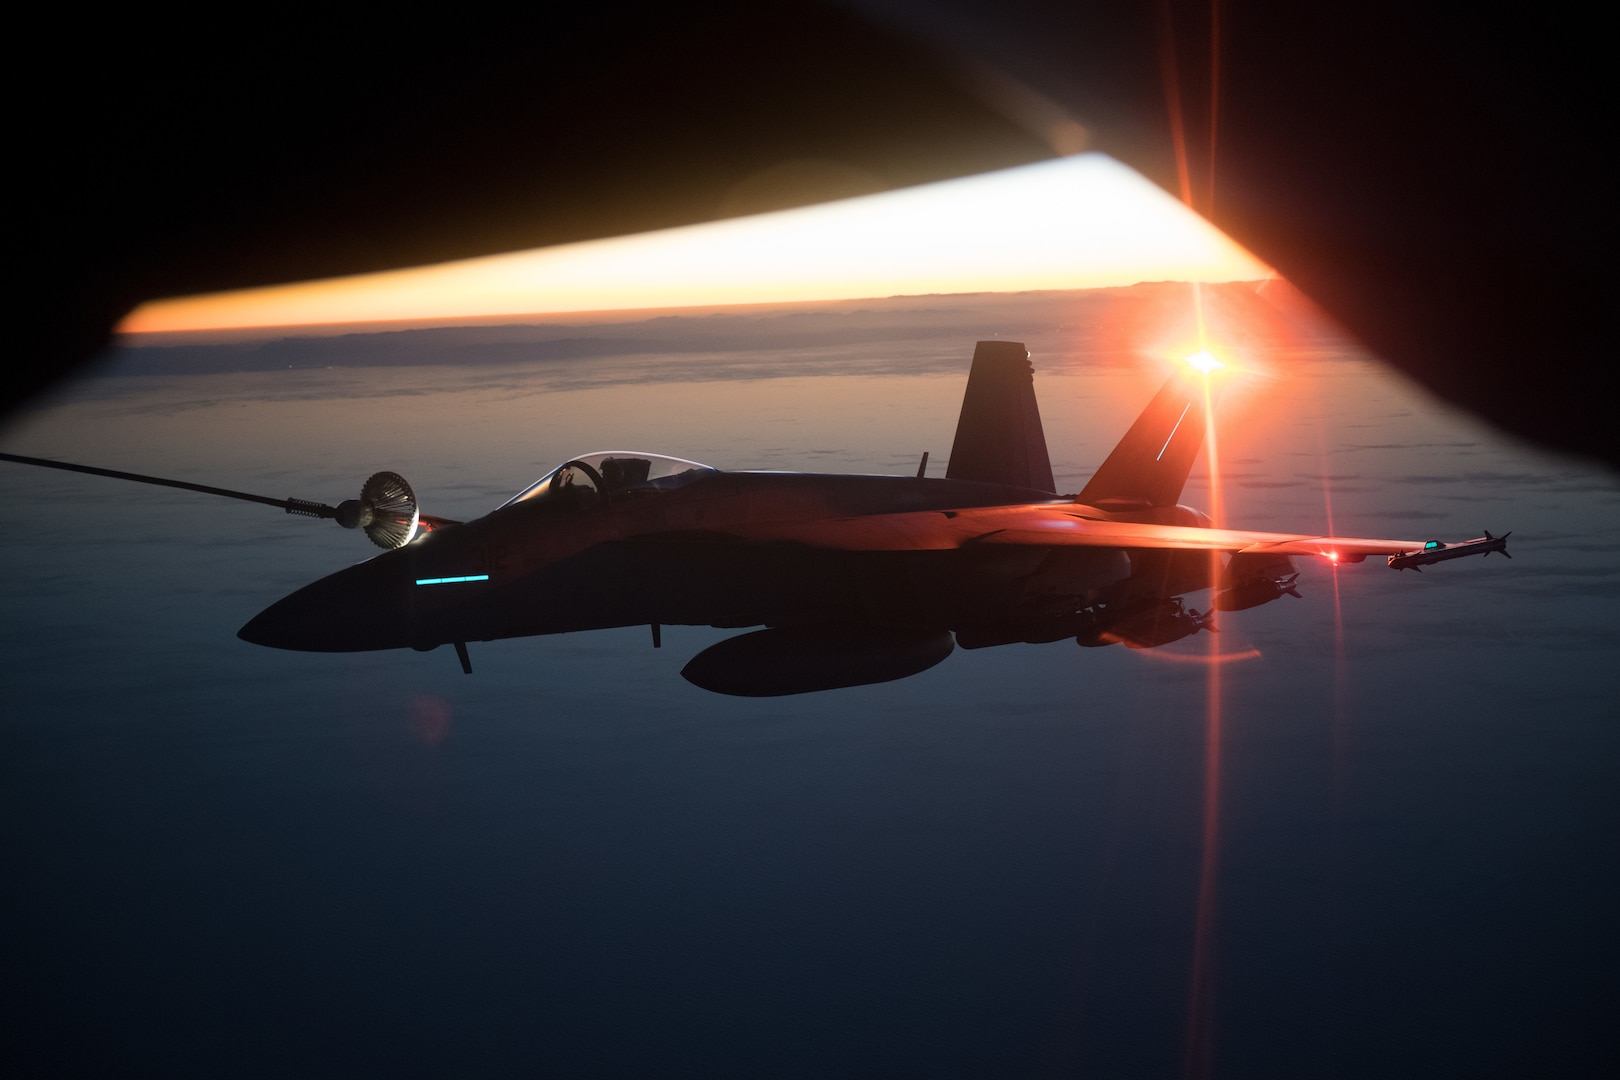 KC-135 Stratotanker assigned to 340th Expeditionary Air Refueling Squadron, Al Udeid Air Base, Qatar, refuels Navy F/A-18E/F Super Hornet assigned to USS Theodore Roosevelt, performing precision airstrikes against six Taliban narcotic targets in Helmand Province, Afghanistan, December 7, 2017 (U.S. Air Force/Jeff Parkinson)